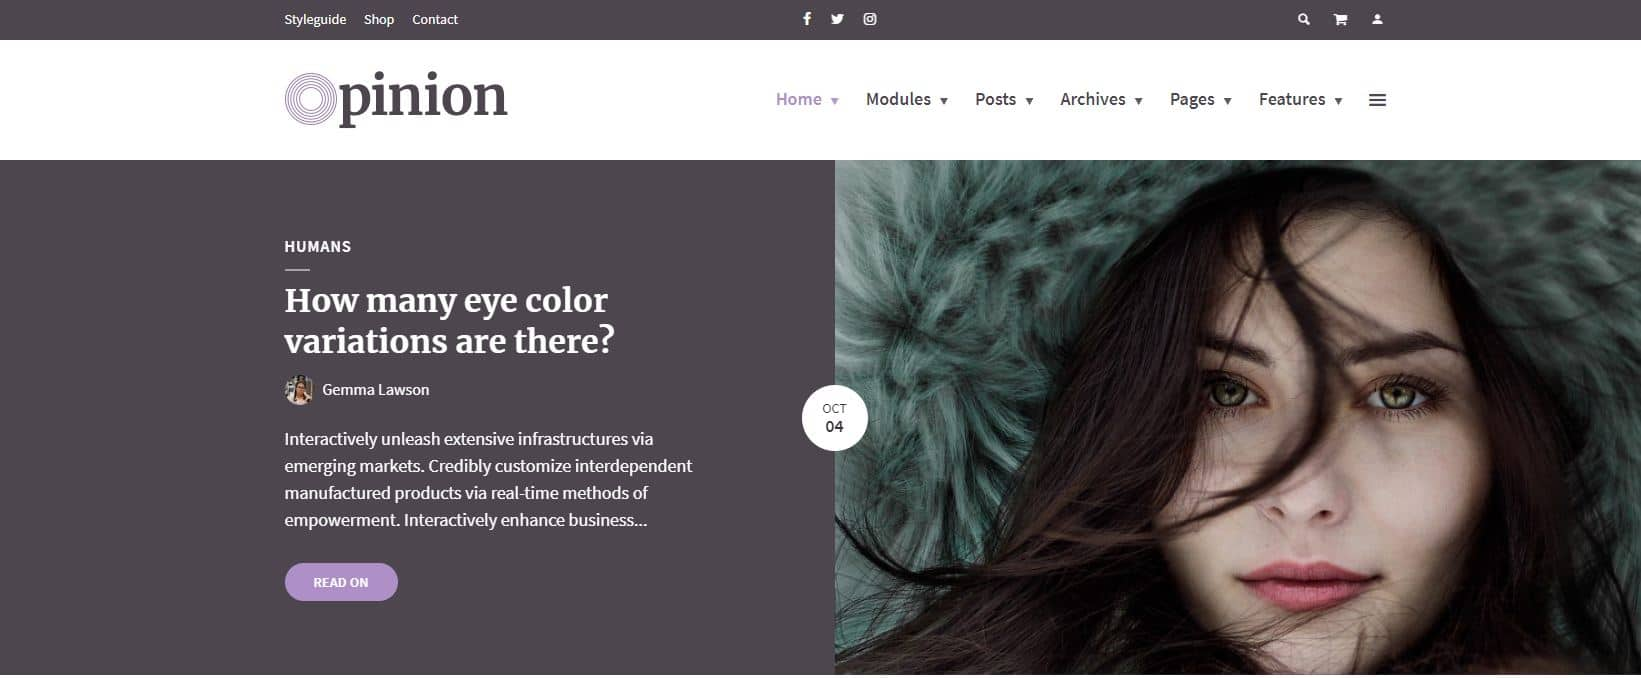 Beste-wordpress-magazine-theme-opinion